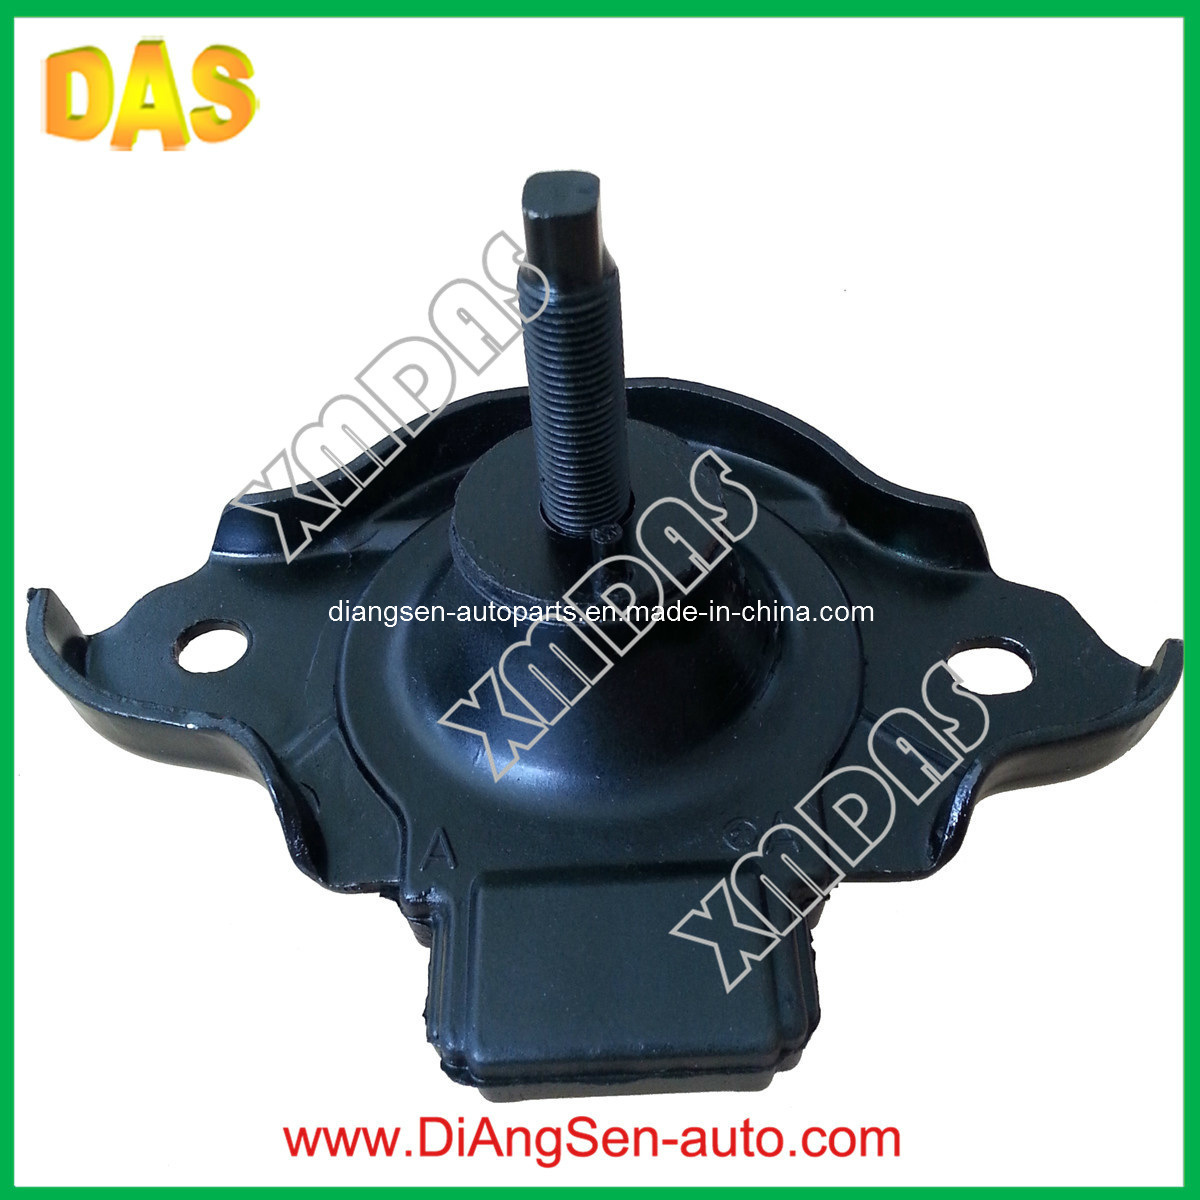 China Reliable Supplier Auto Parts Engine Mounting For Honda City 2009 Ridgeline Suspension Control Arm Front Right Lower W0133 Jazz 50821 Saa 013